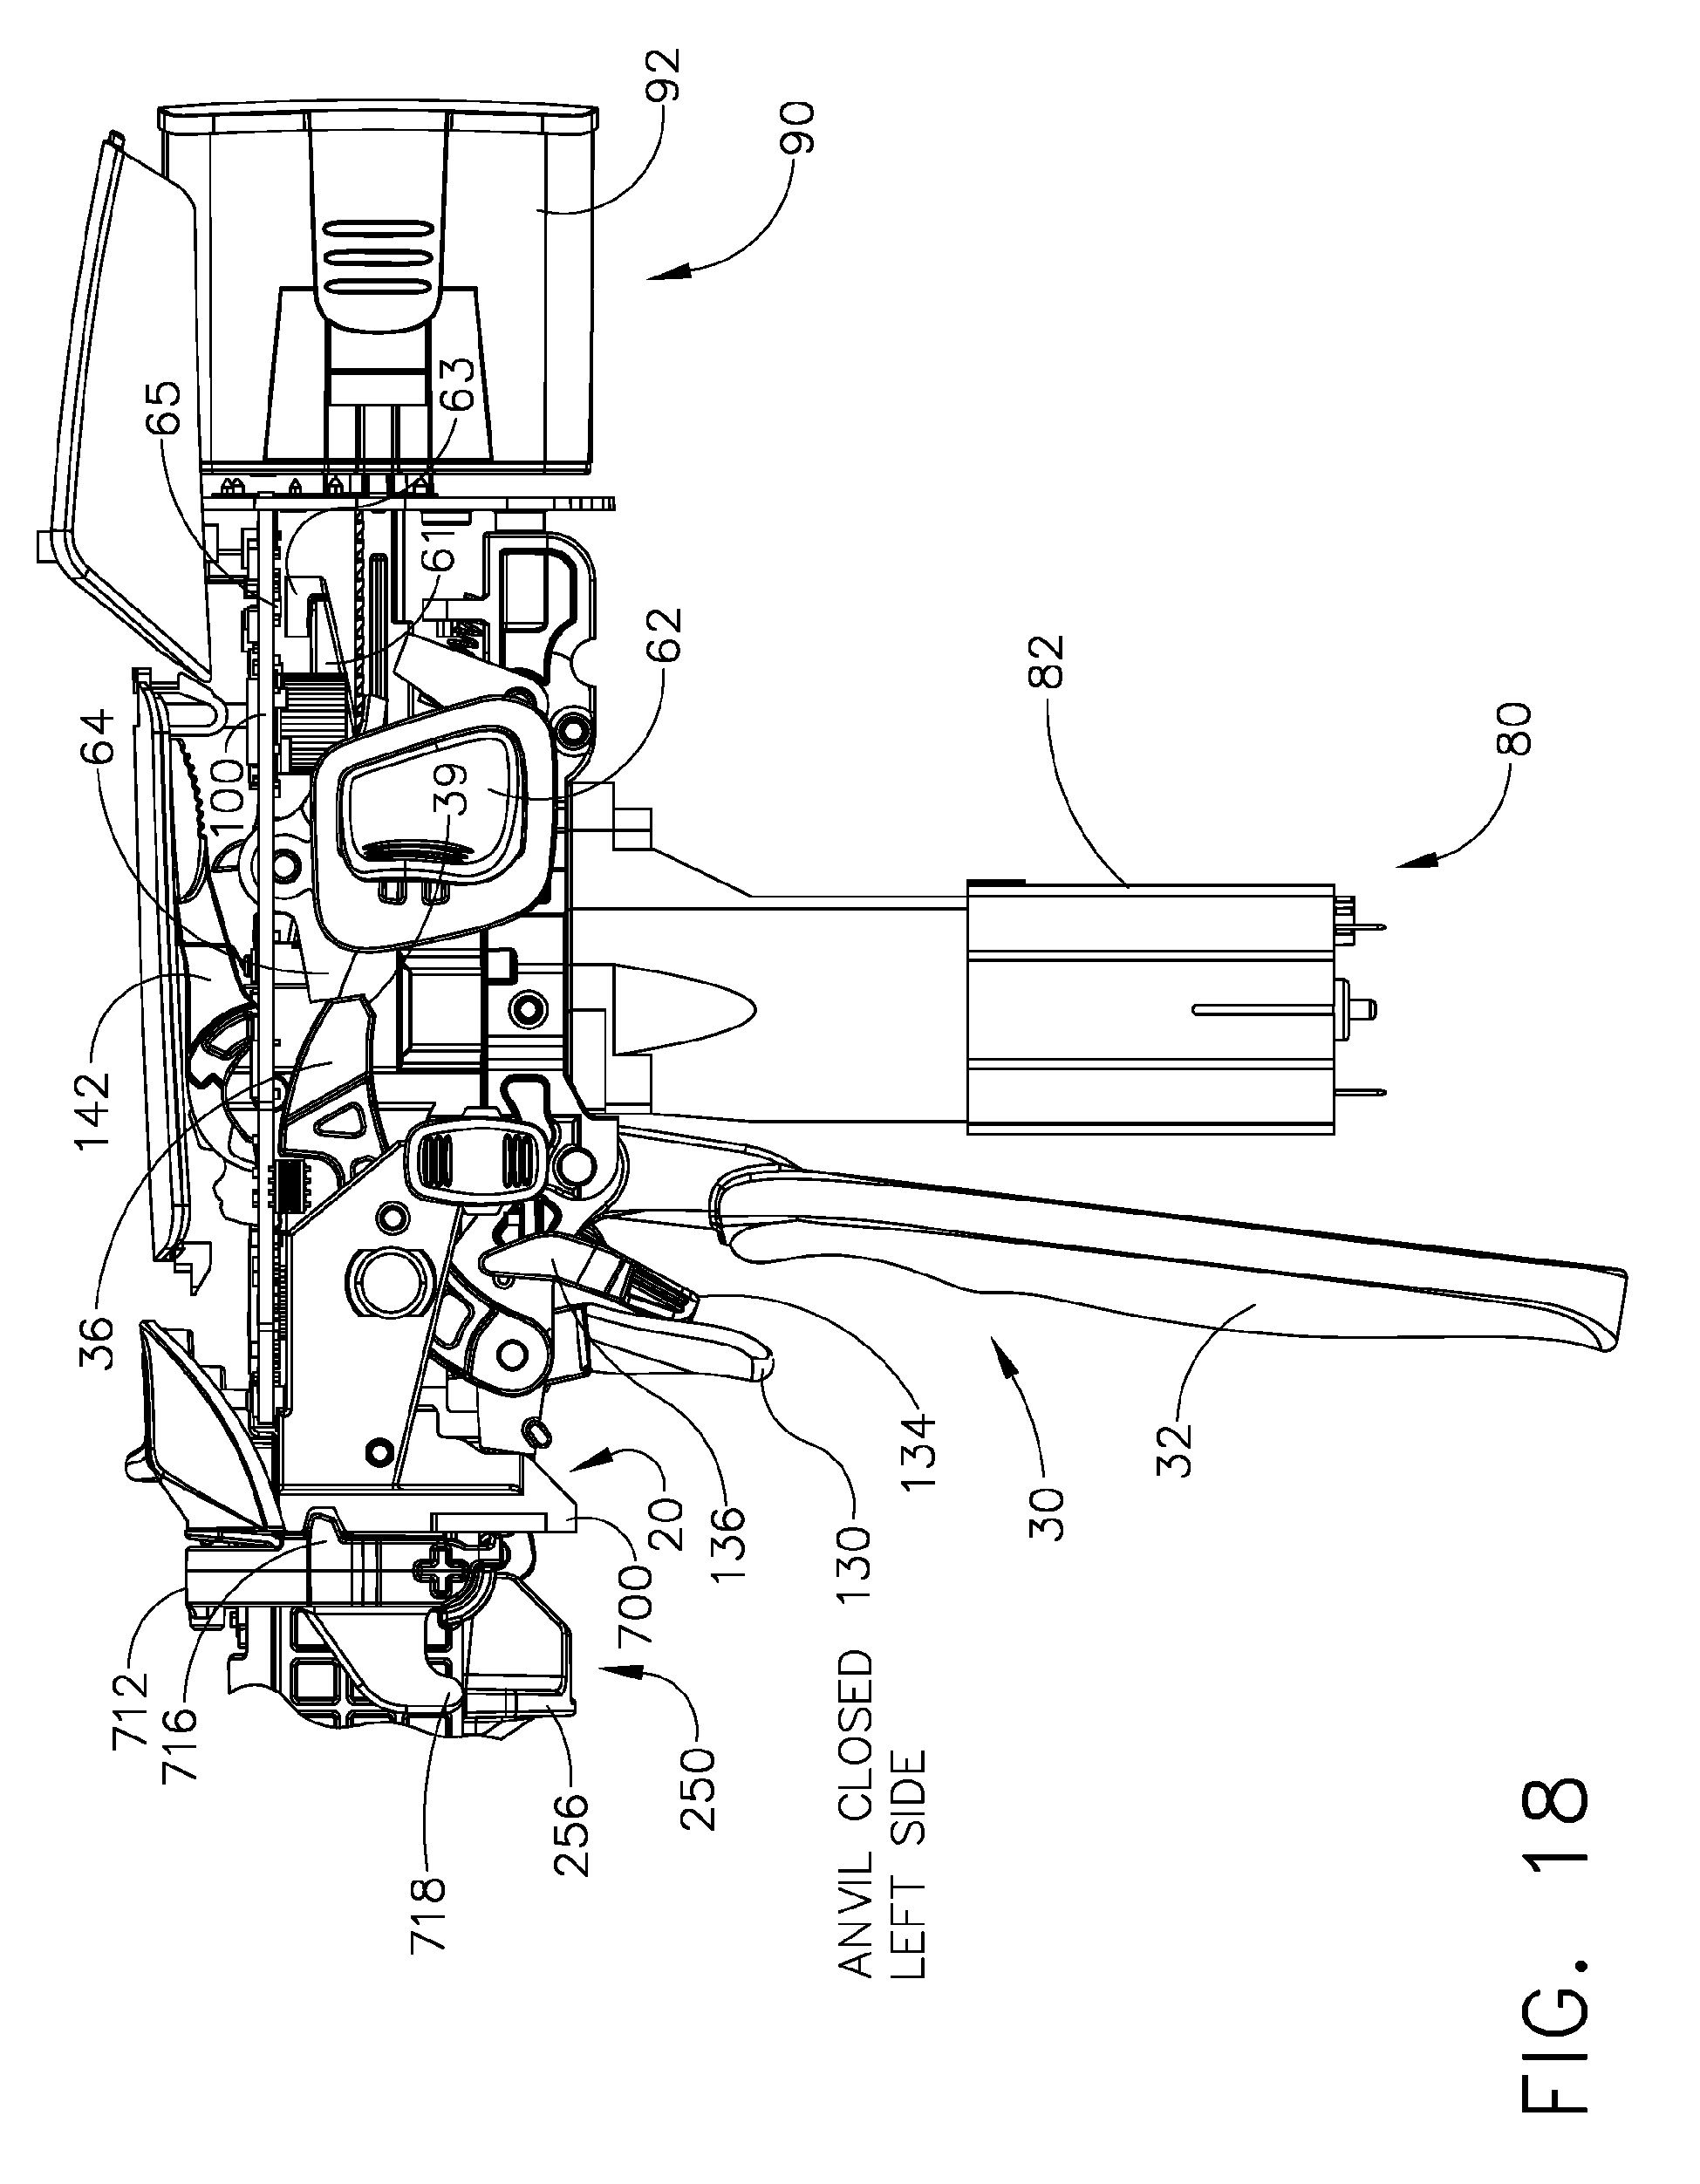 Ep2923657a1 Modular Powered Surgical Instrument With Detachable Circuits Gt 6 Battery Tesla Switch 720 Watt Mosfet Circuit Designed Shaft Assemblies Google Patents